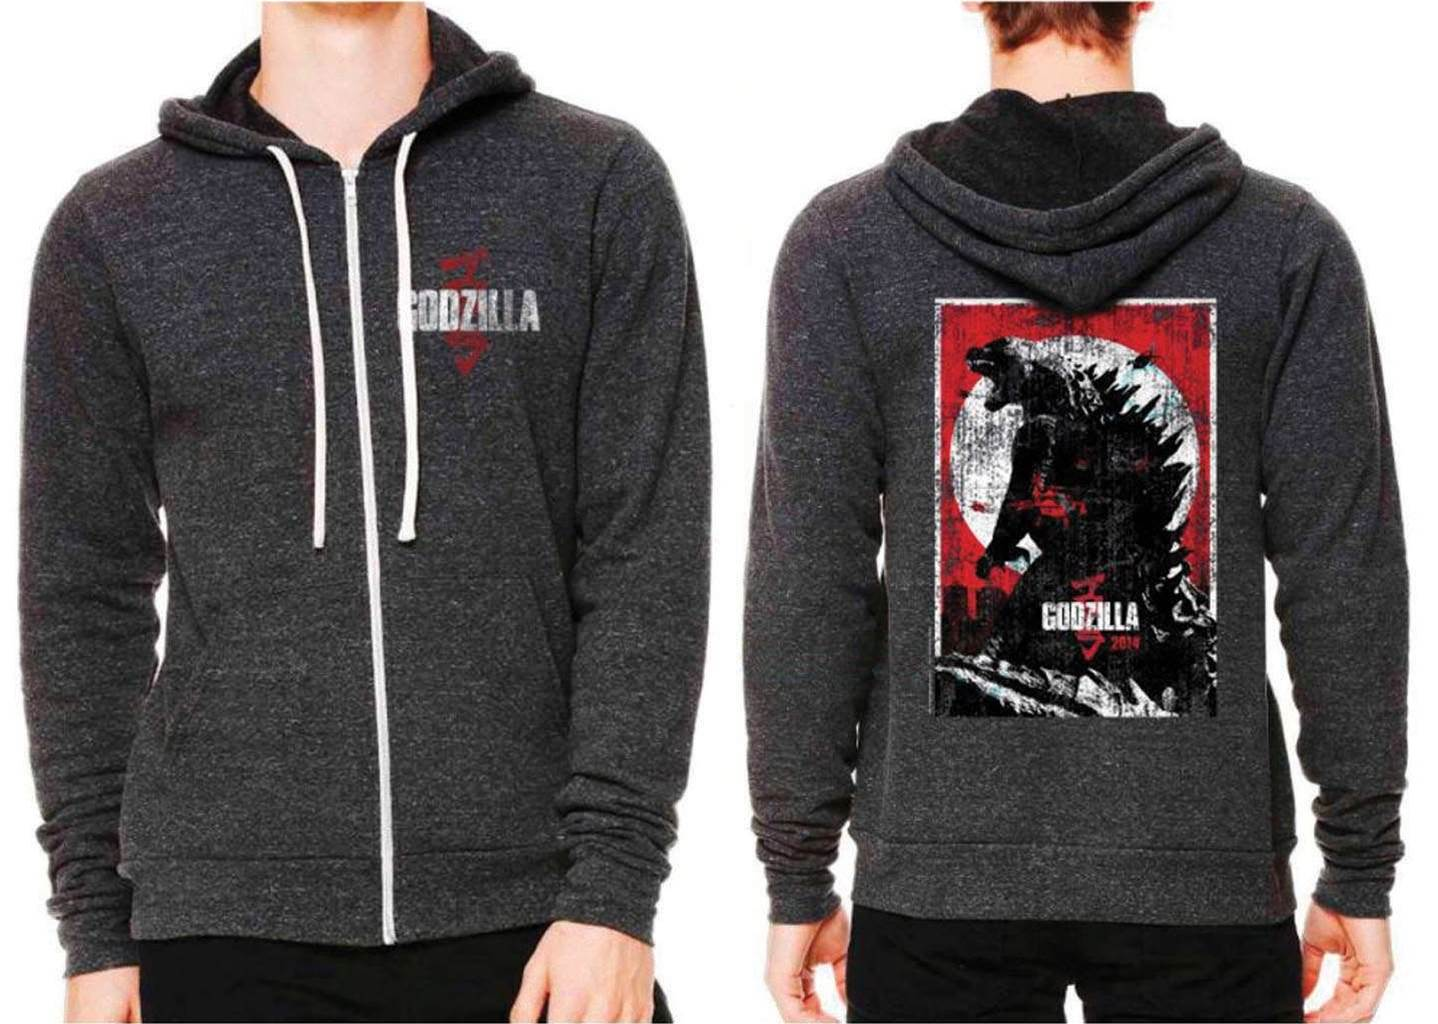 WIN! One of FIVE Godzilla prize packs